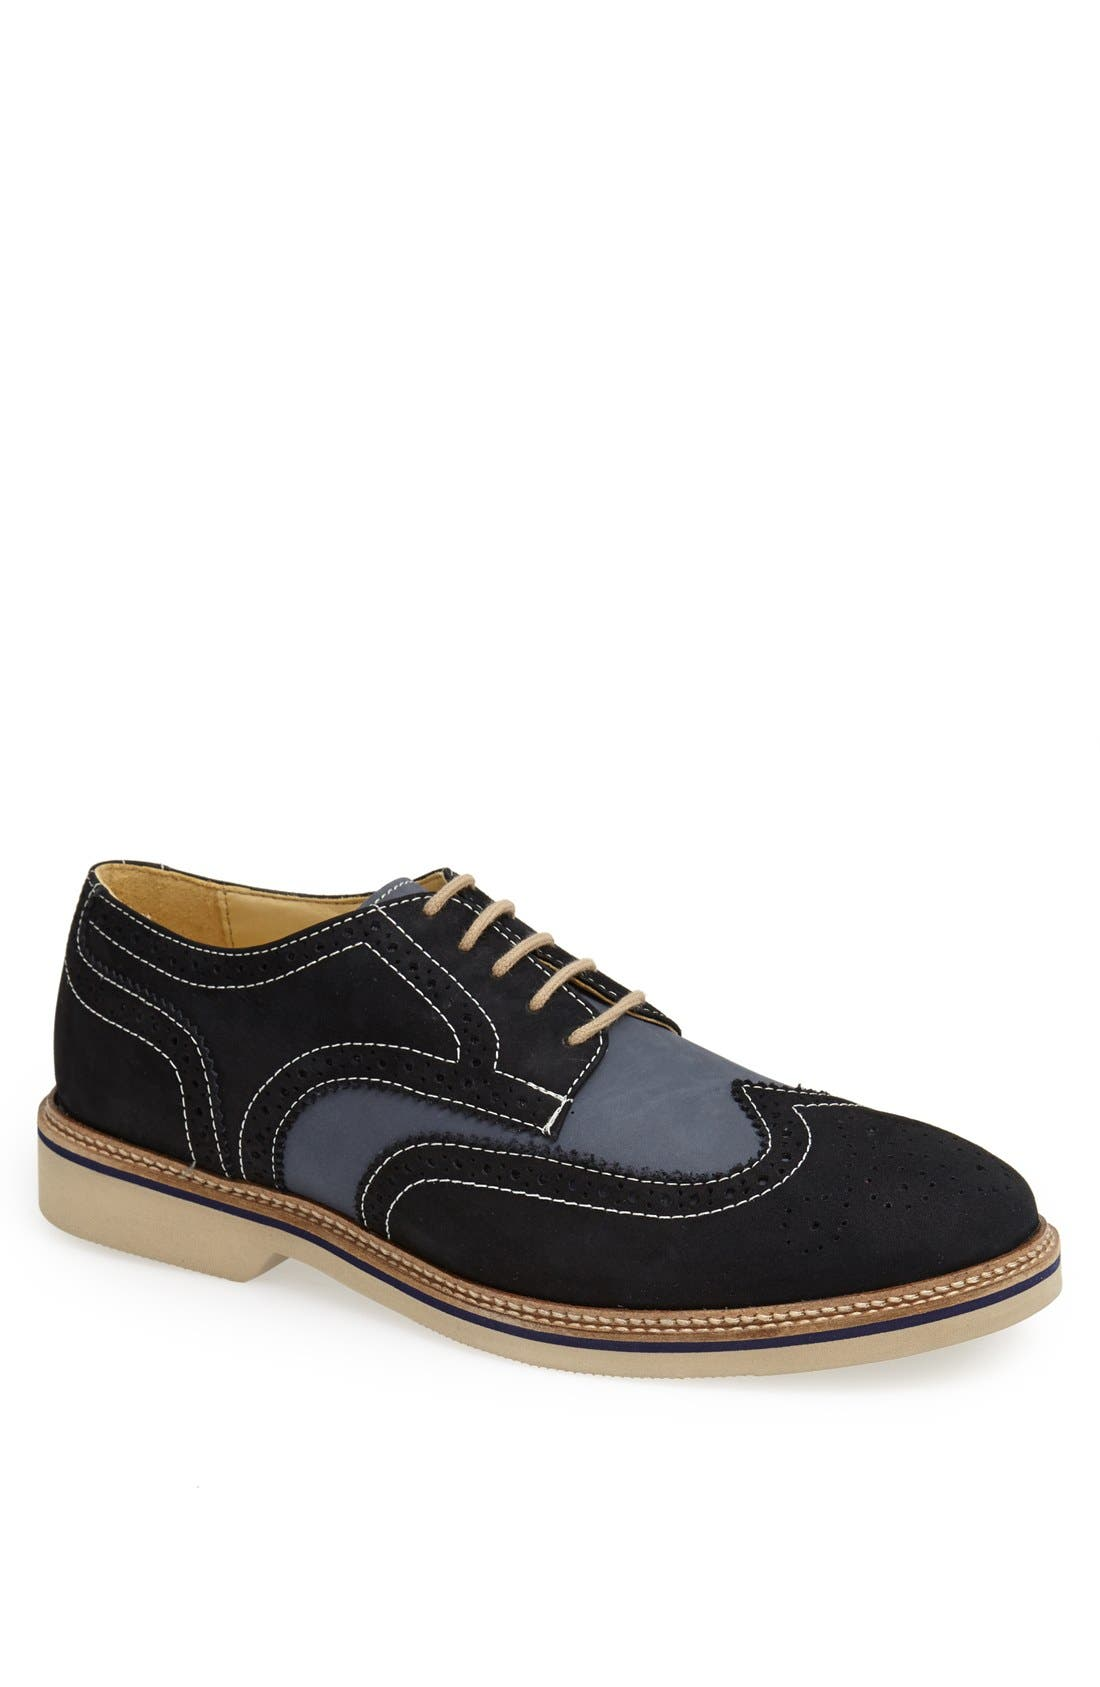 Main Image - 1901 'Wing It' Suede Oxford (Men)